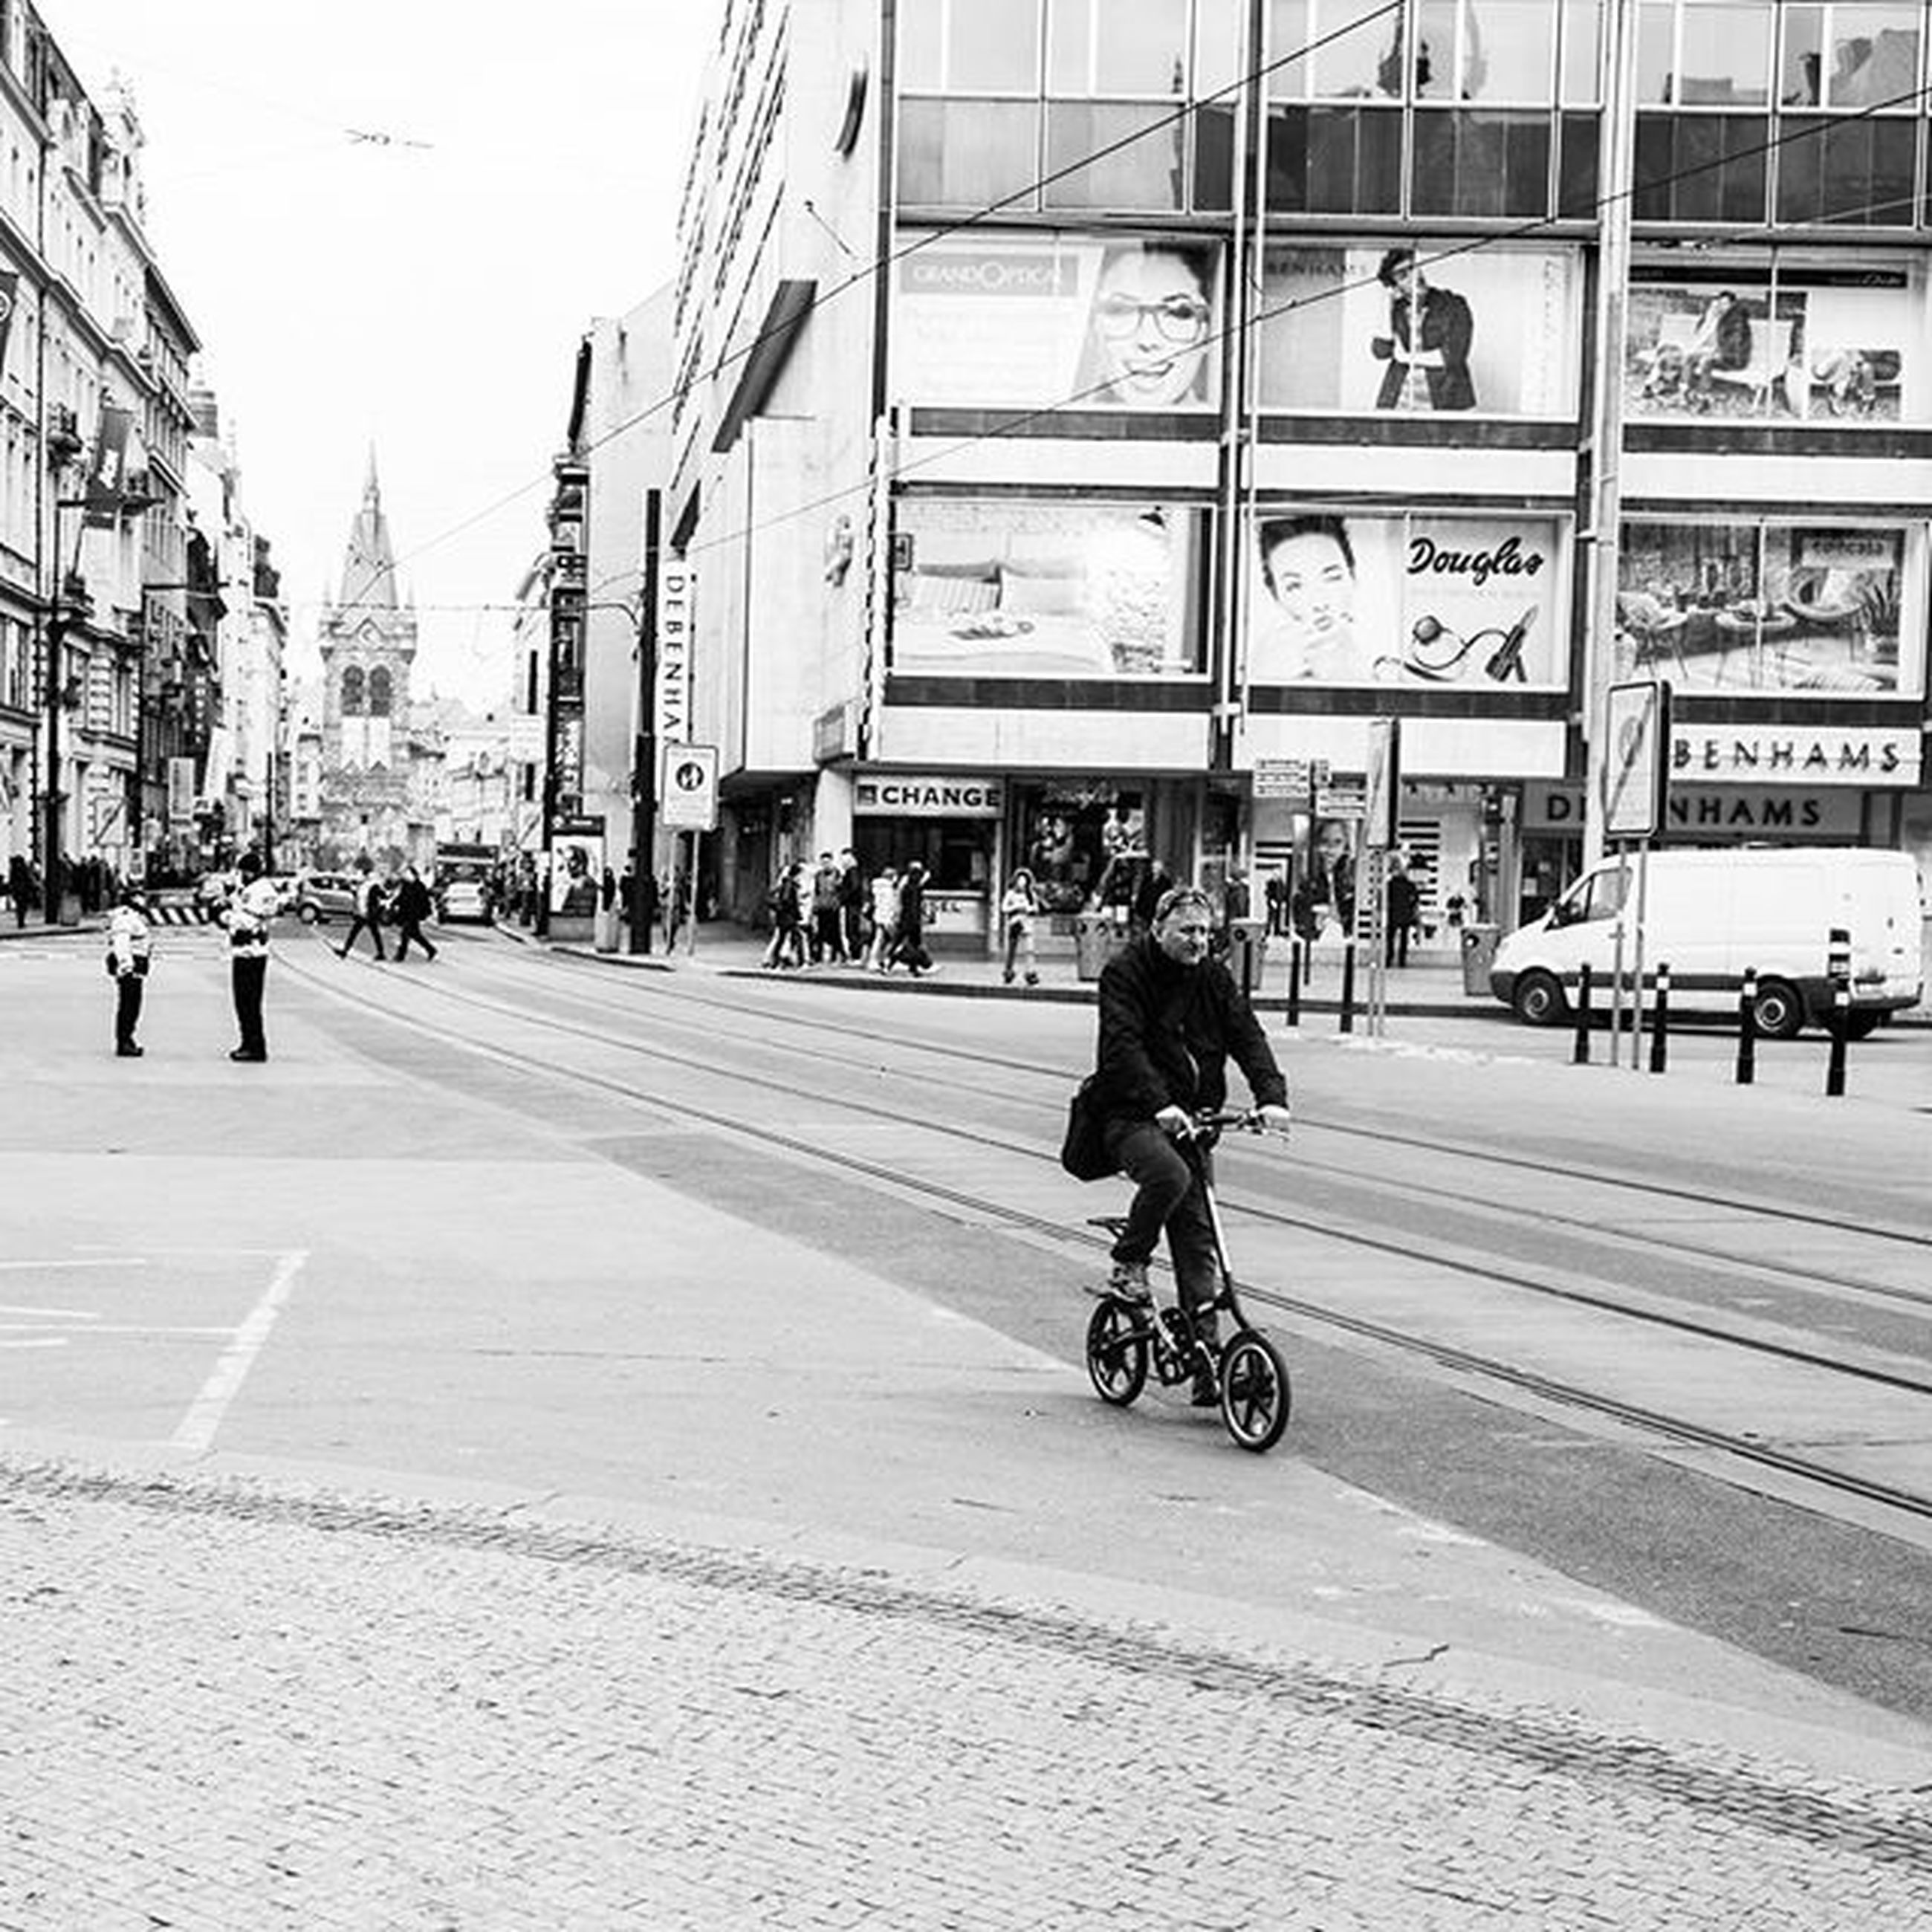 transportation, city, architecture, street, men, built structure, building exterior, city life, walking, person, land vehicle, mode of transport, lifestyles, bicycle, large group of people, city street, road, full length, leisure activity